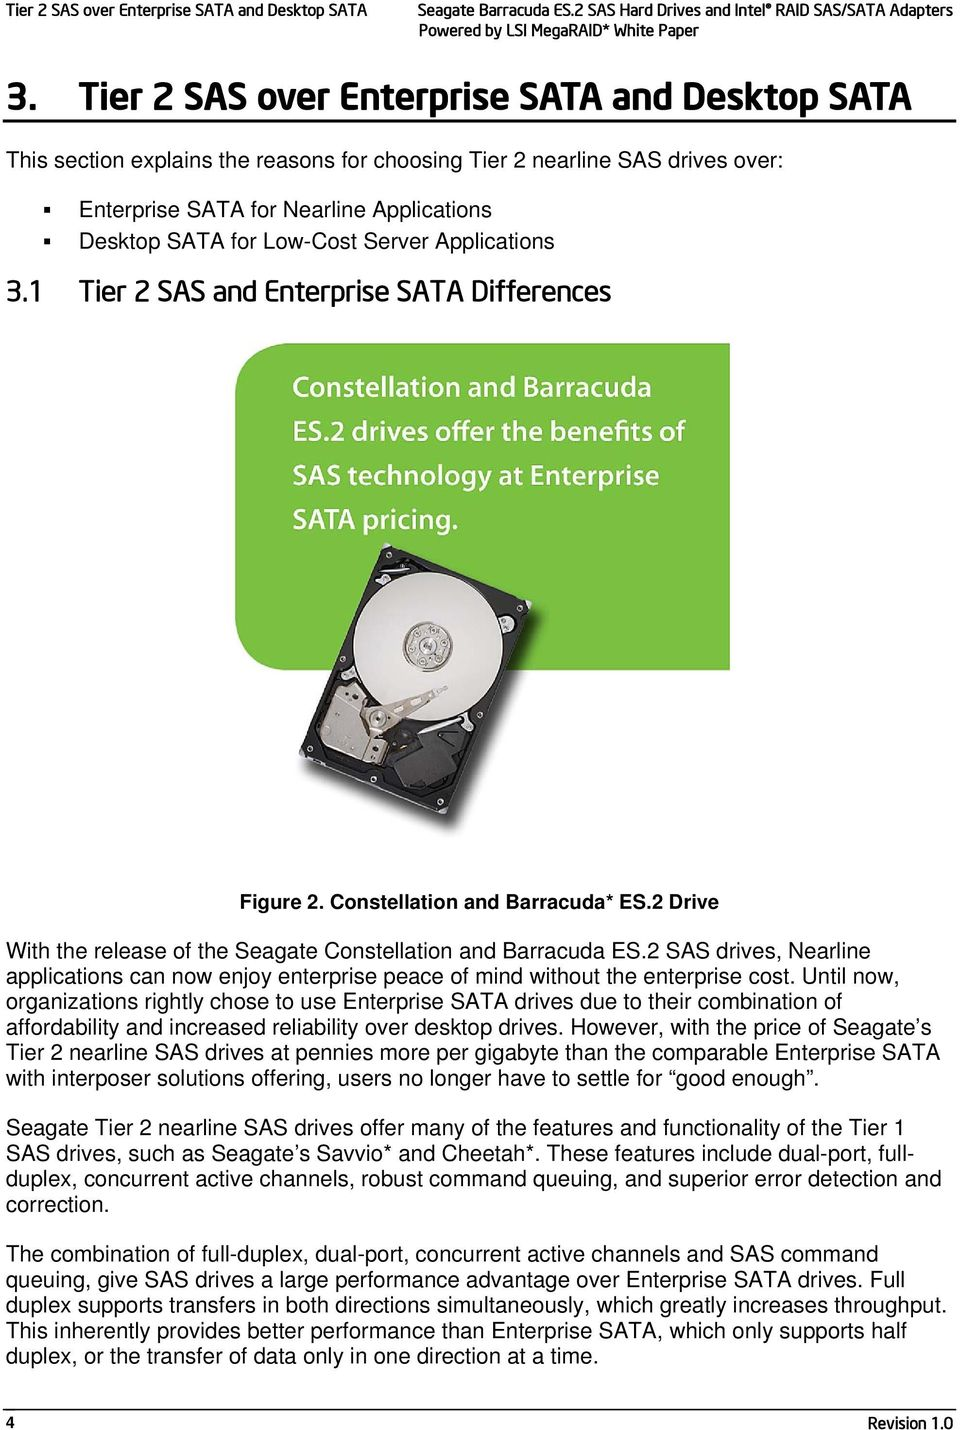 Server Applications 3.1 Tier 2 SAS and Enterprise SATA Differences Figure 2. Constellation and Barracuda* ES.2 Drive With the release of the Seagate Constellation and Barracuda ES.